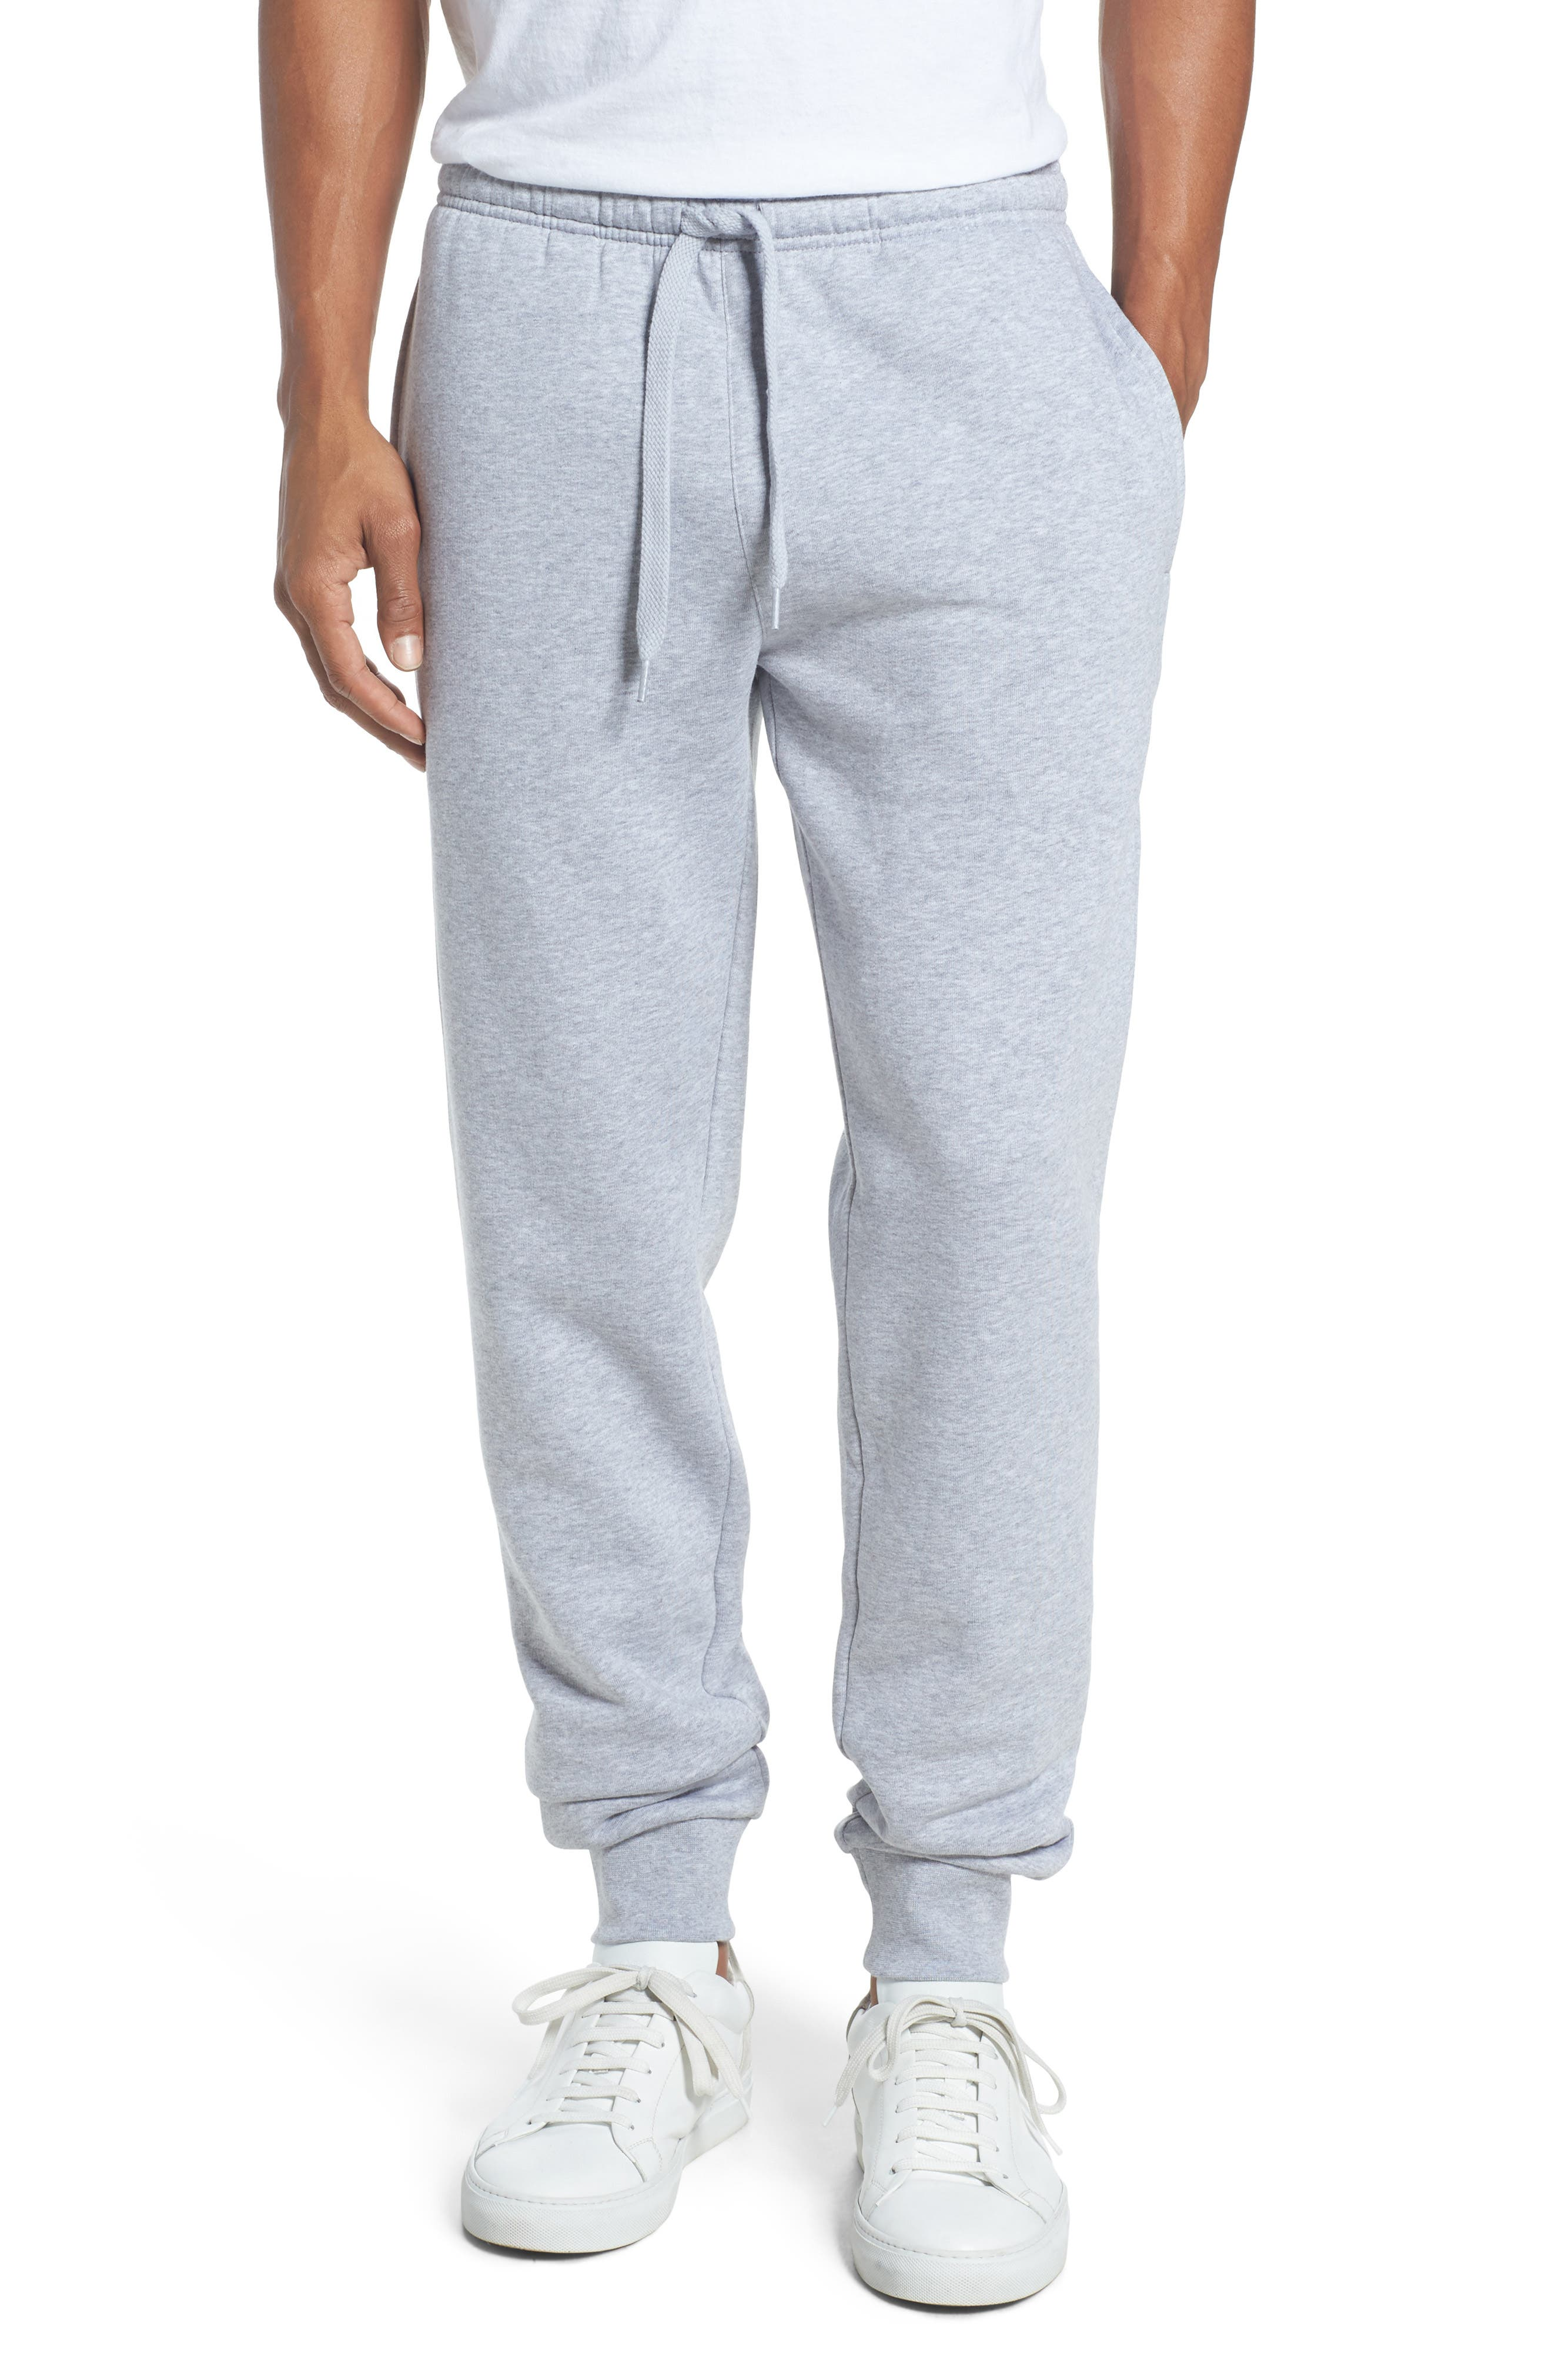 Sport Track Pants,                         Main,                         color, Silver Chine